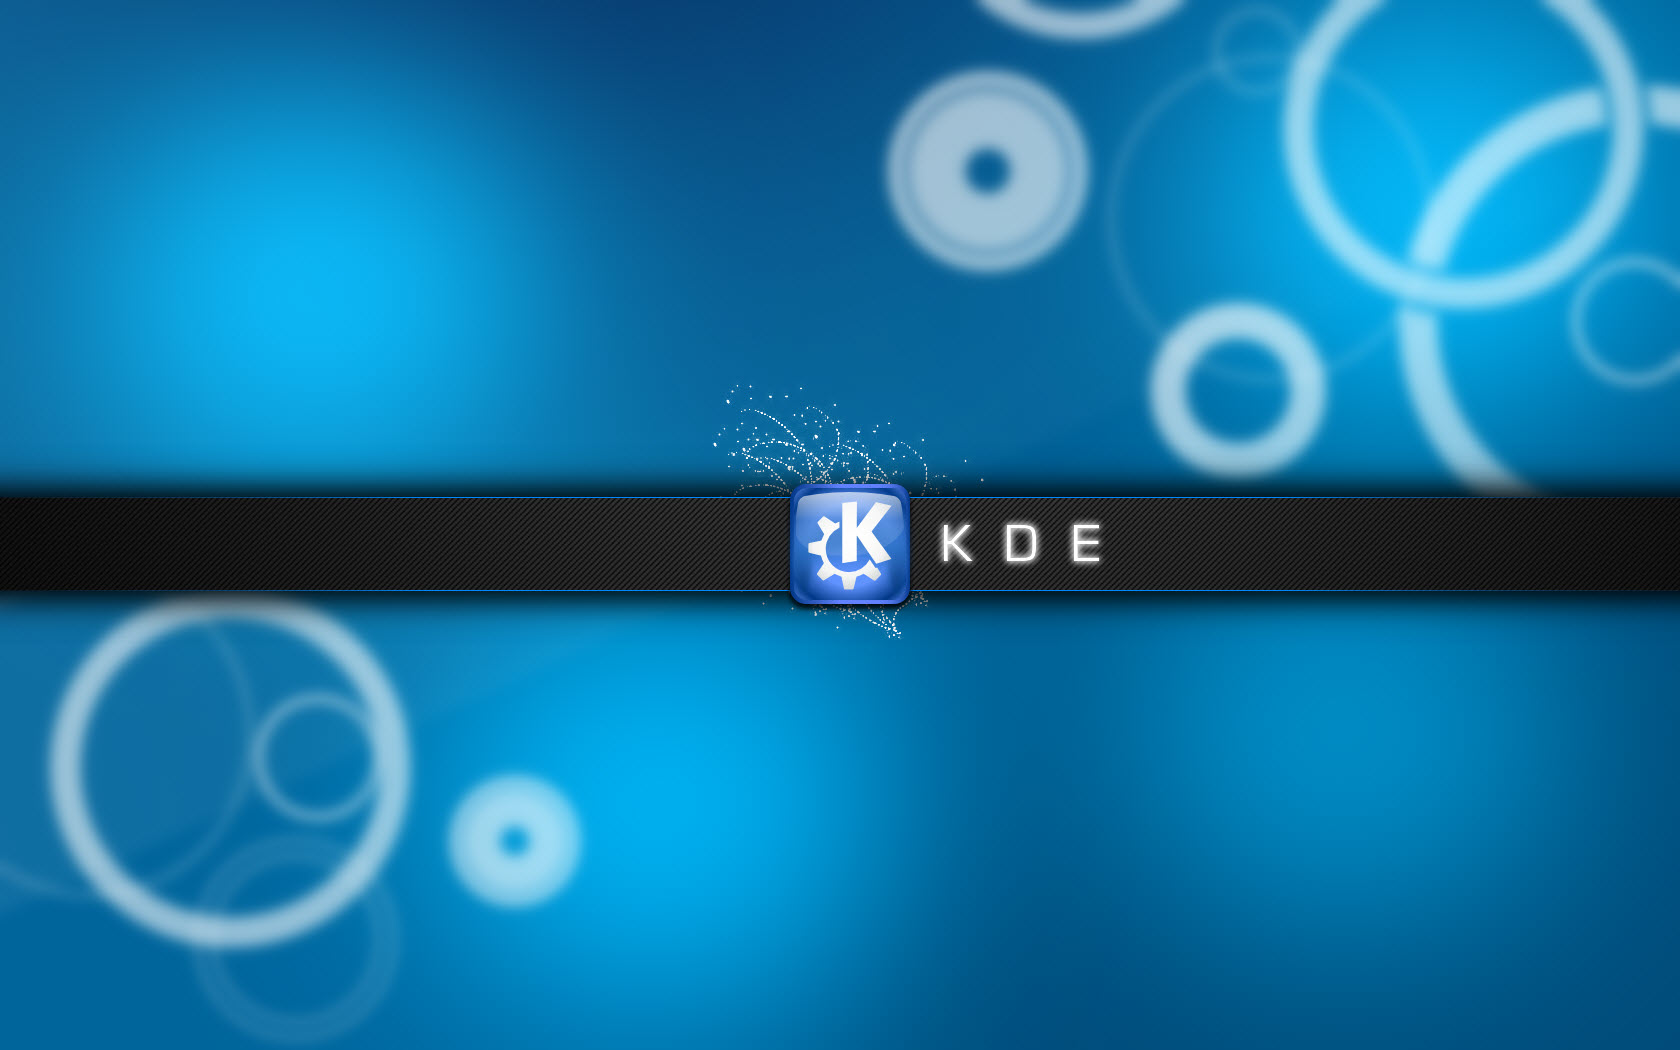 KDE Experience Freedom9505619978 - KDE Experience Freedom - Imagination, Freedom, Experience